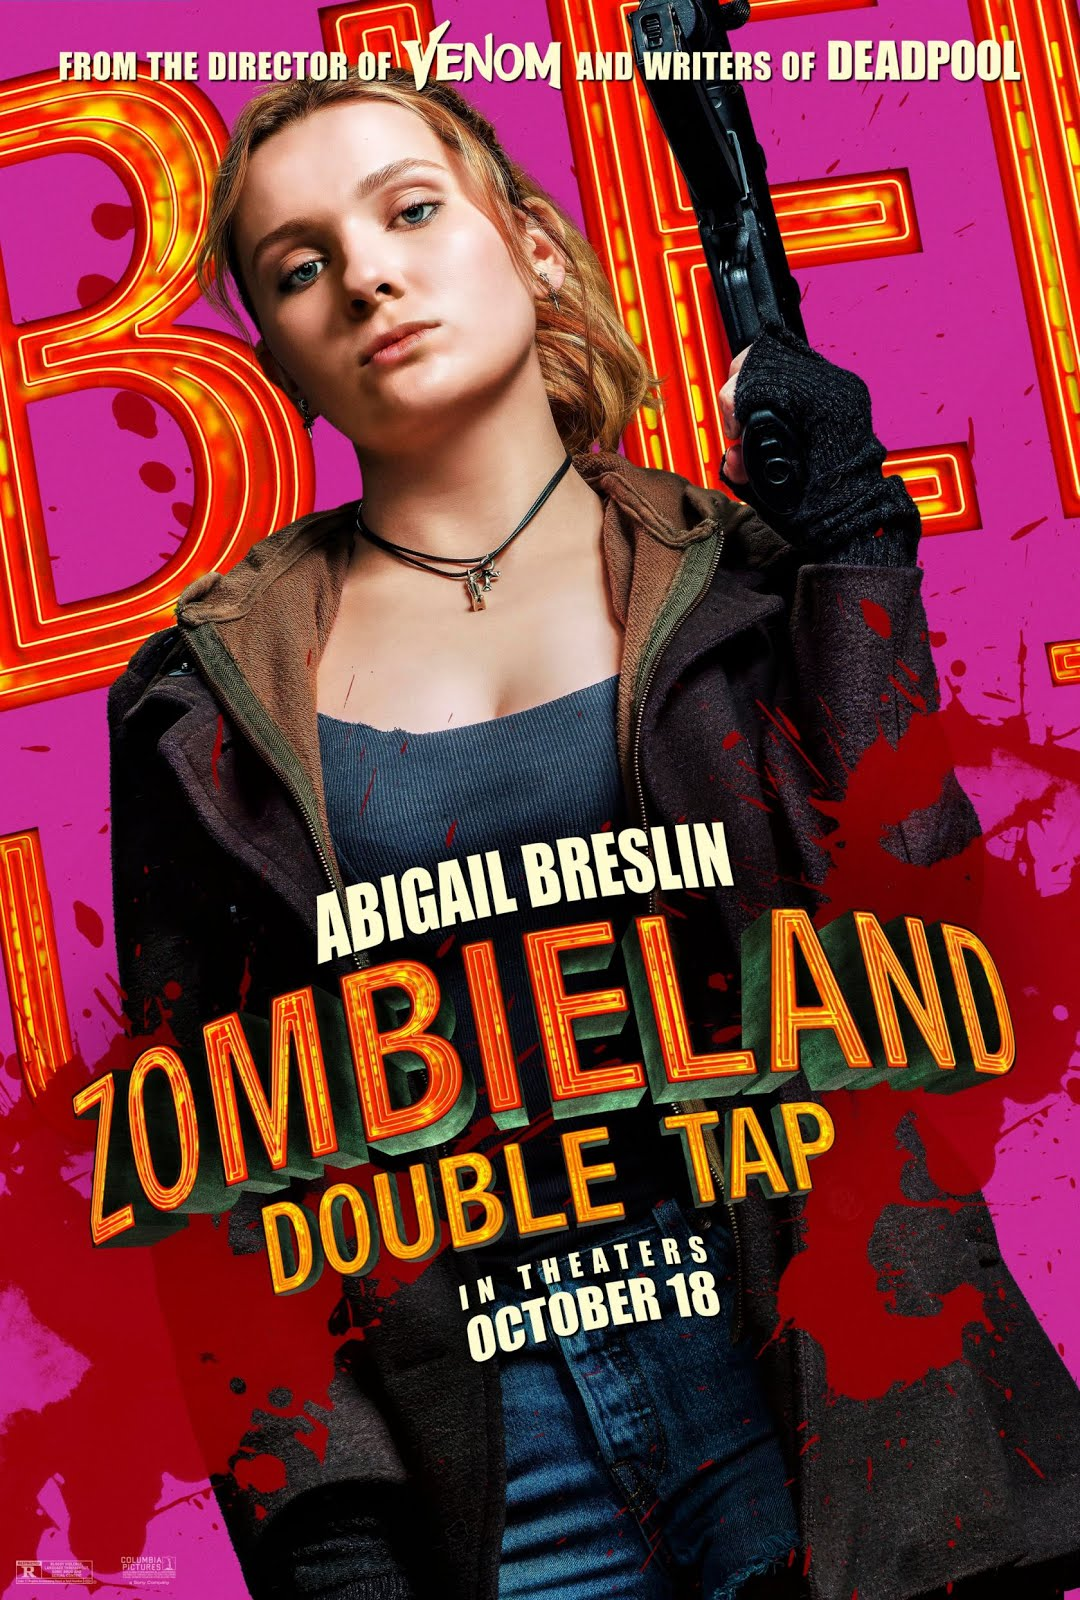 Zombieland 2: Double Tap 2019 Hindi Dubbed 300MB HDCAM 480p